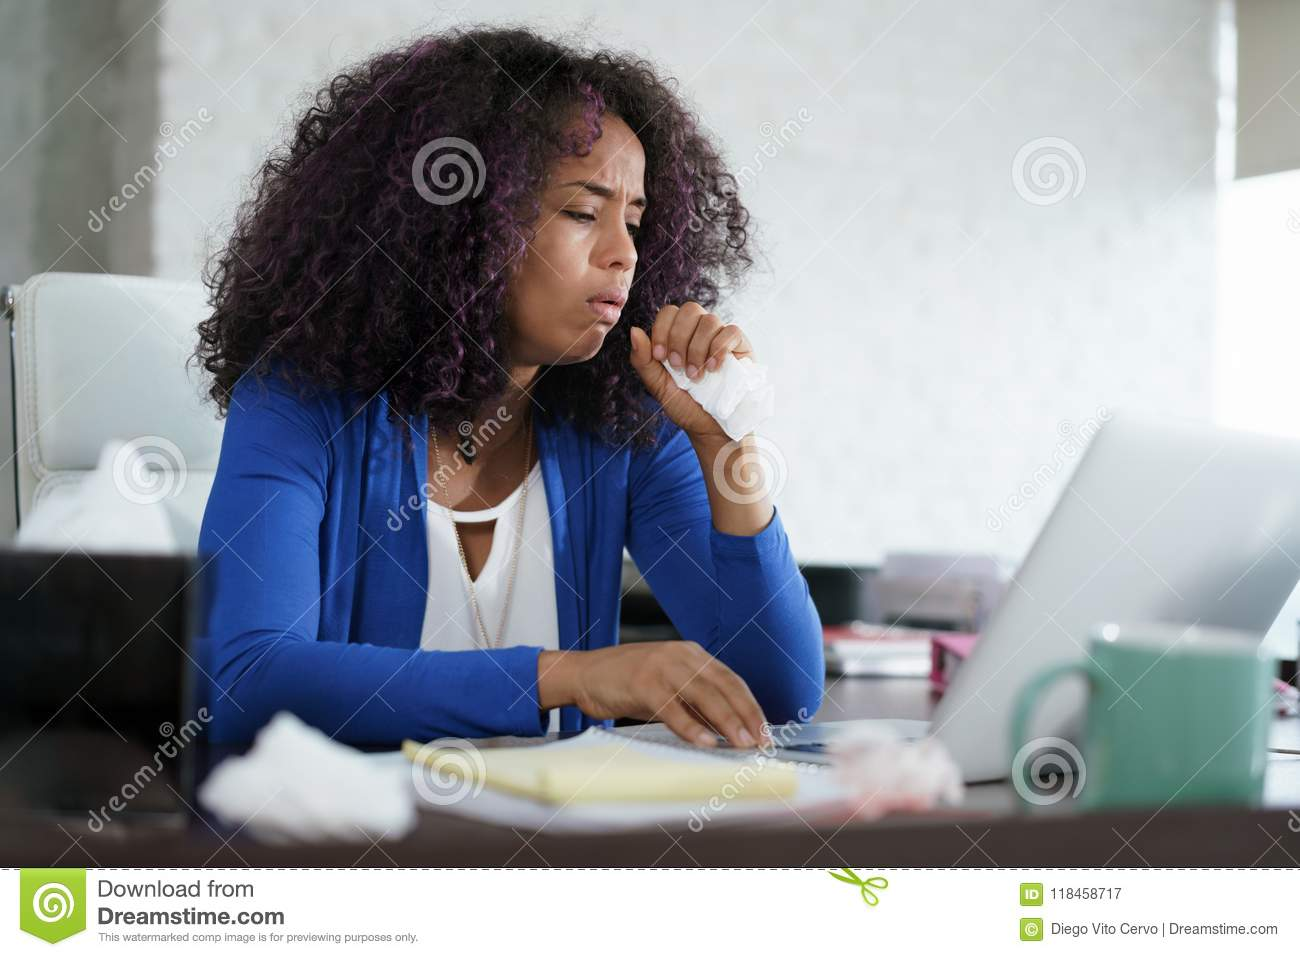 African American Woman Working At Home Coughing And Sneezing